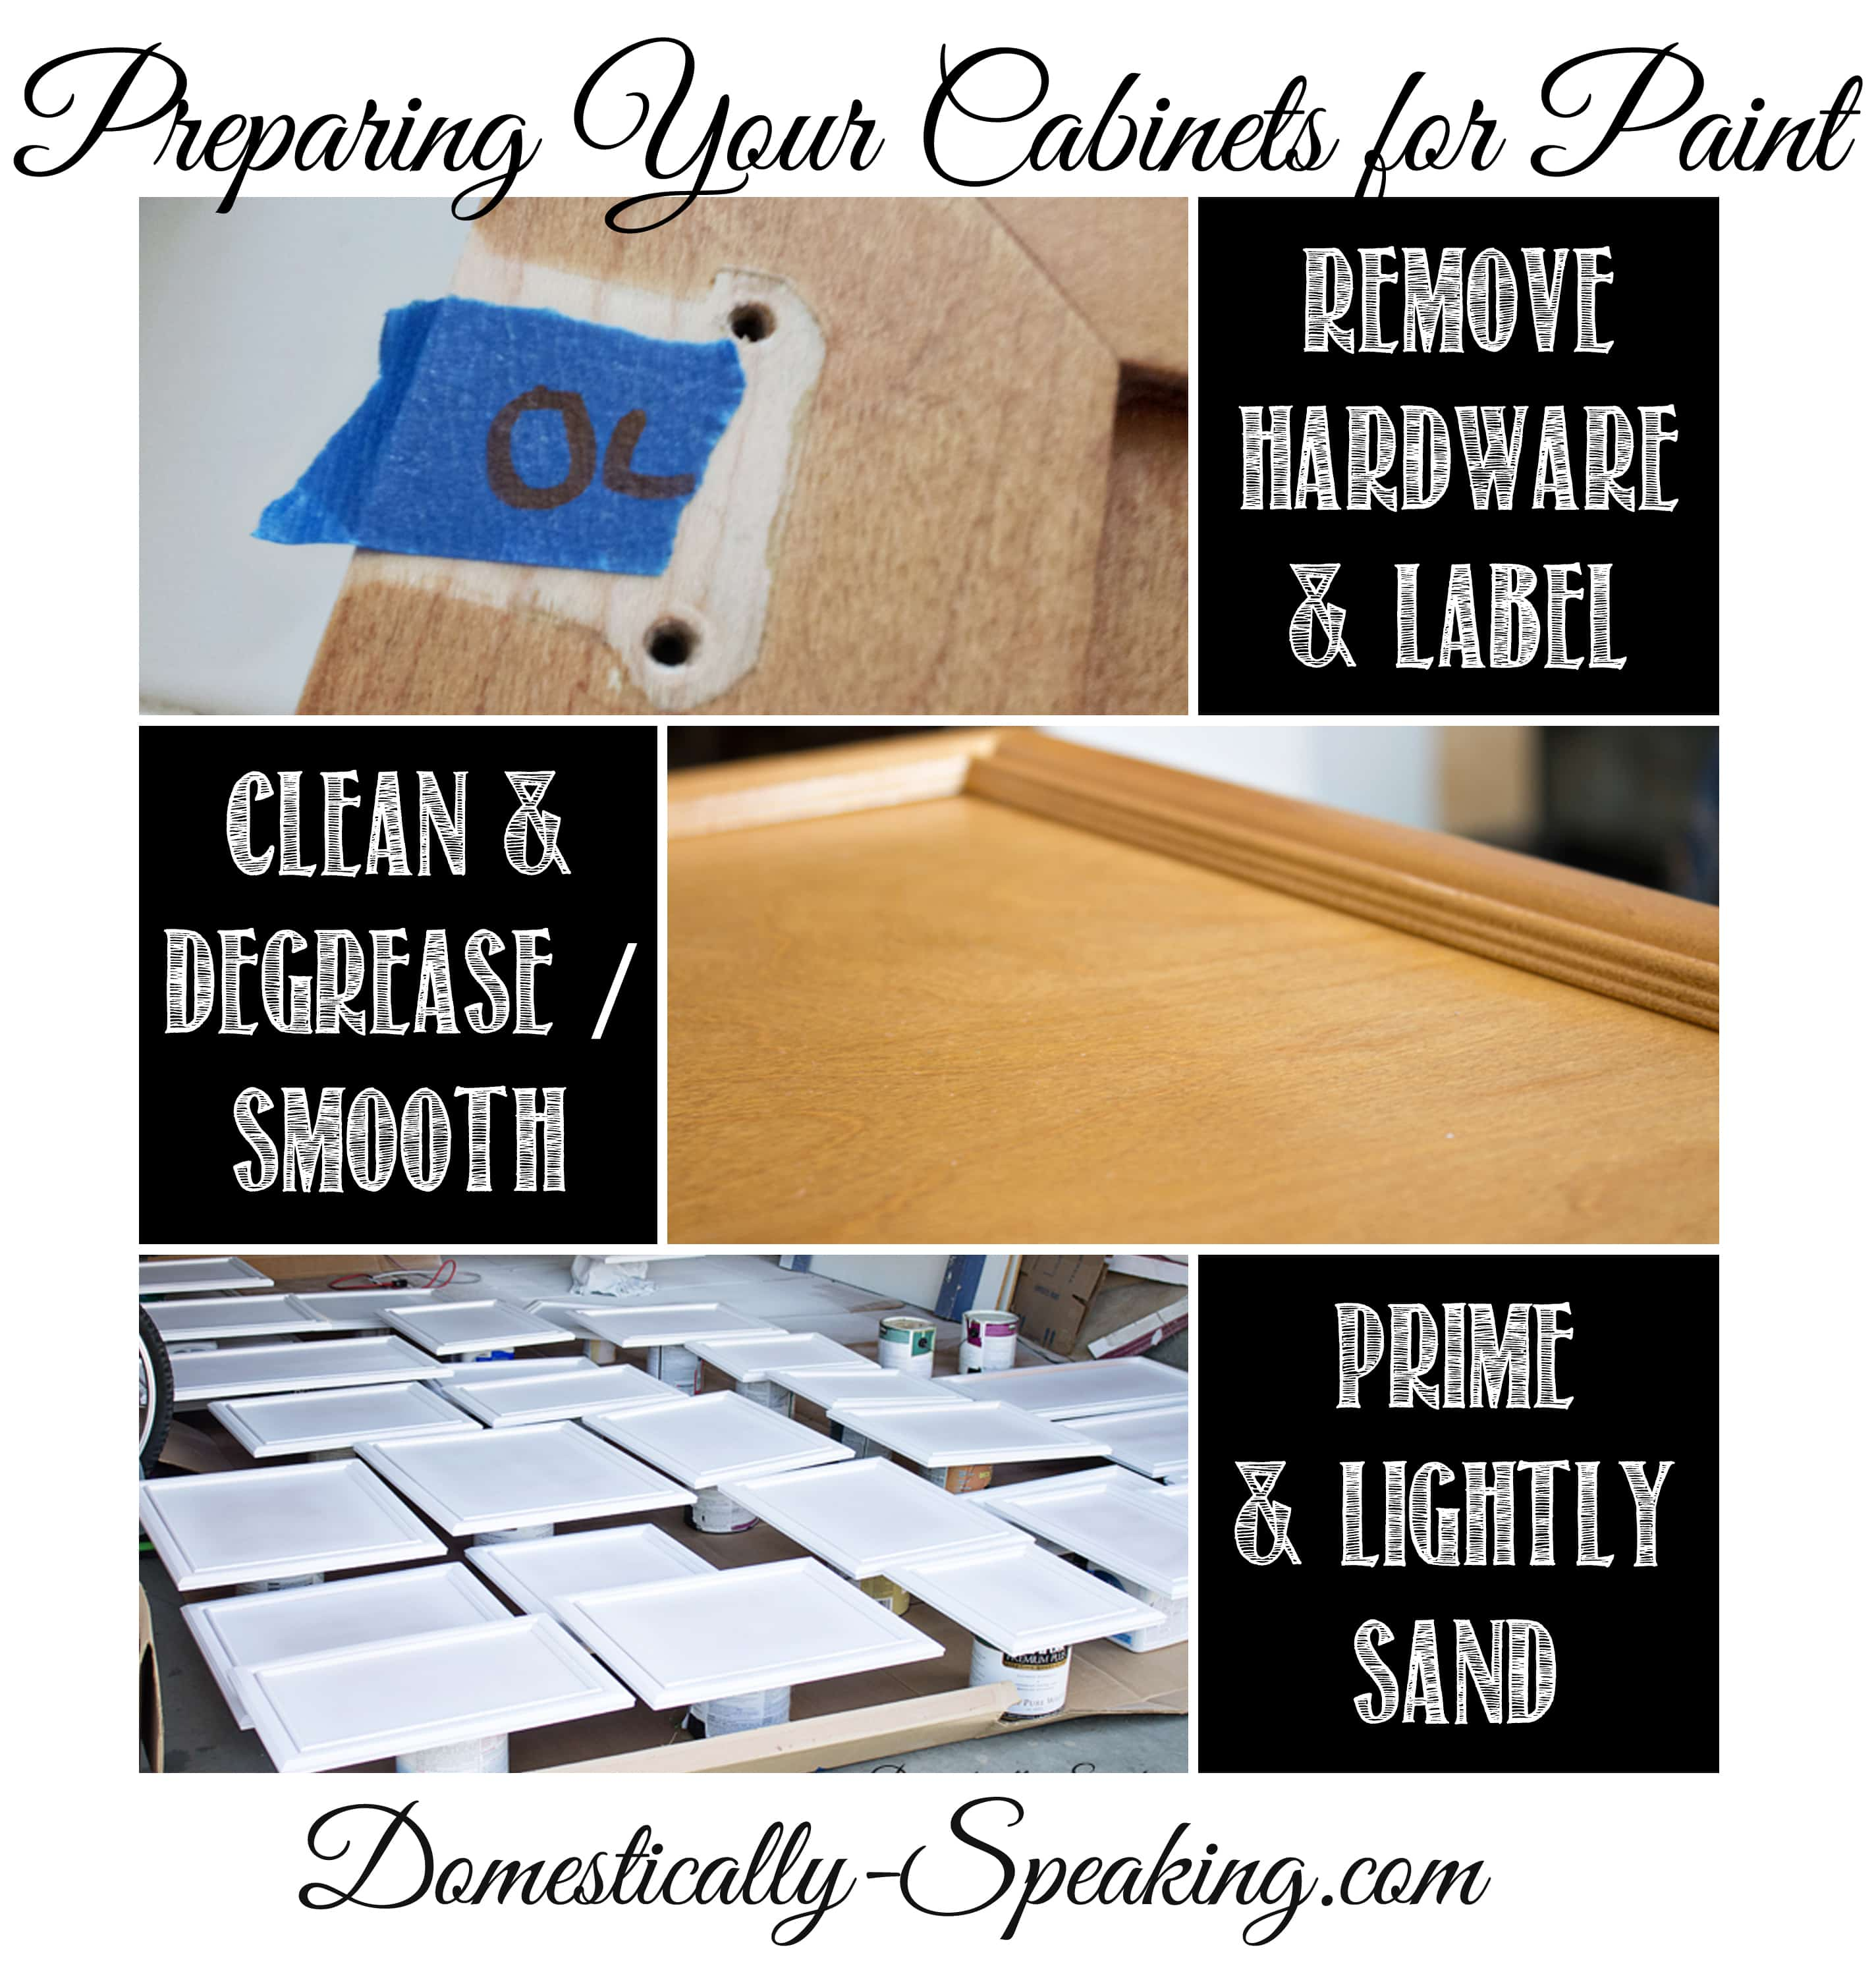 How To Prep Kitchen Cabinets For Painting Preparing Your Cabinets For Paint Domestically Speaking